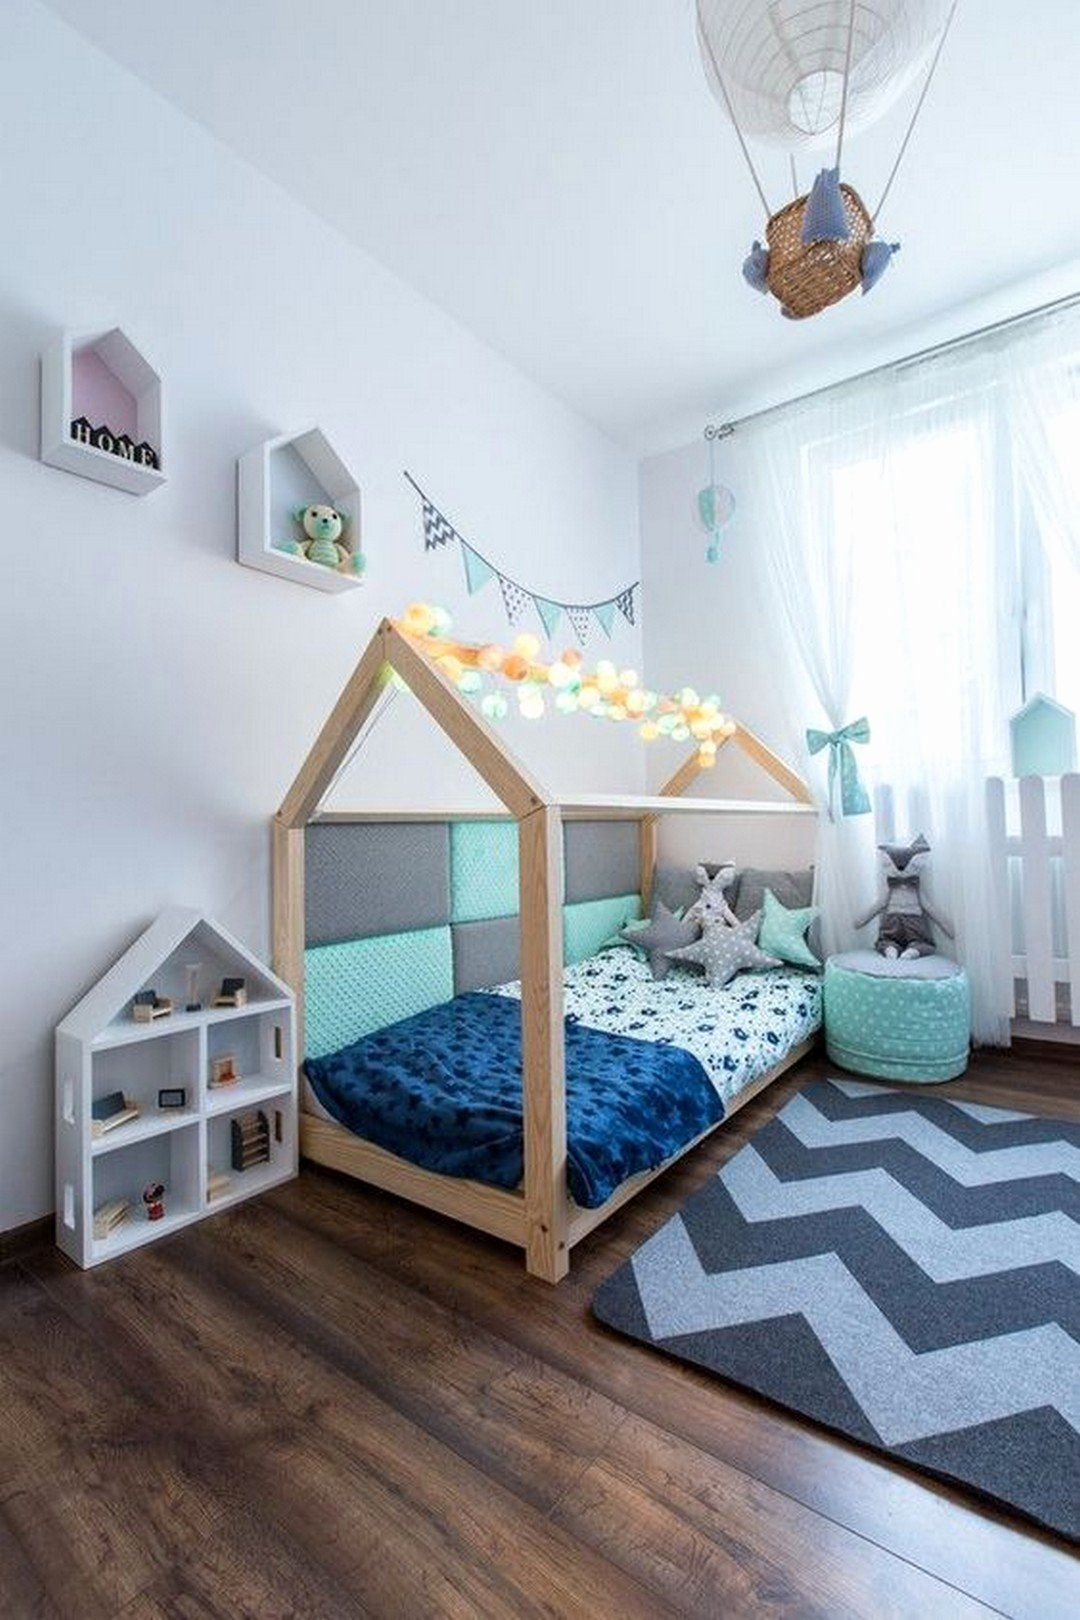 2 Year Old Boy Bedroom New The Best 2 Year Old Boys Bedroom Design Collections 2018 Toddler Floor Bed Toddler Rooms Kid Beds